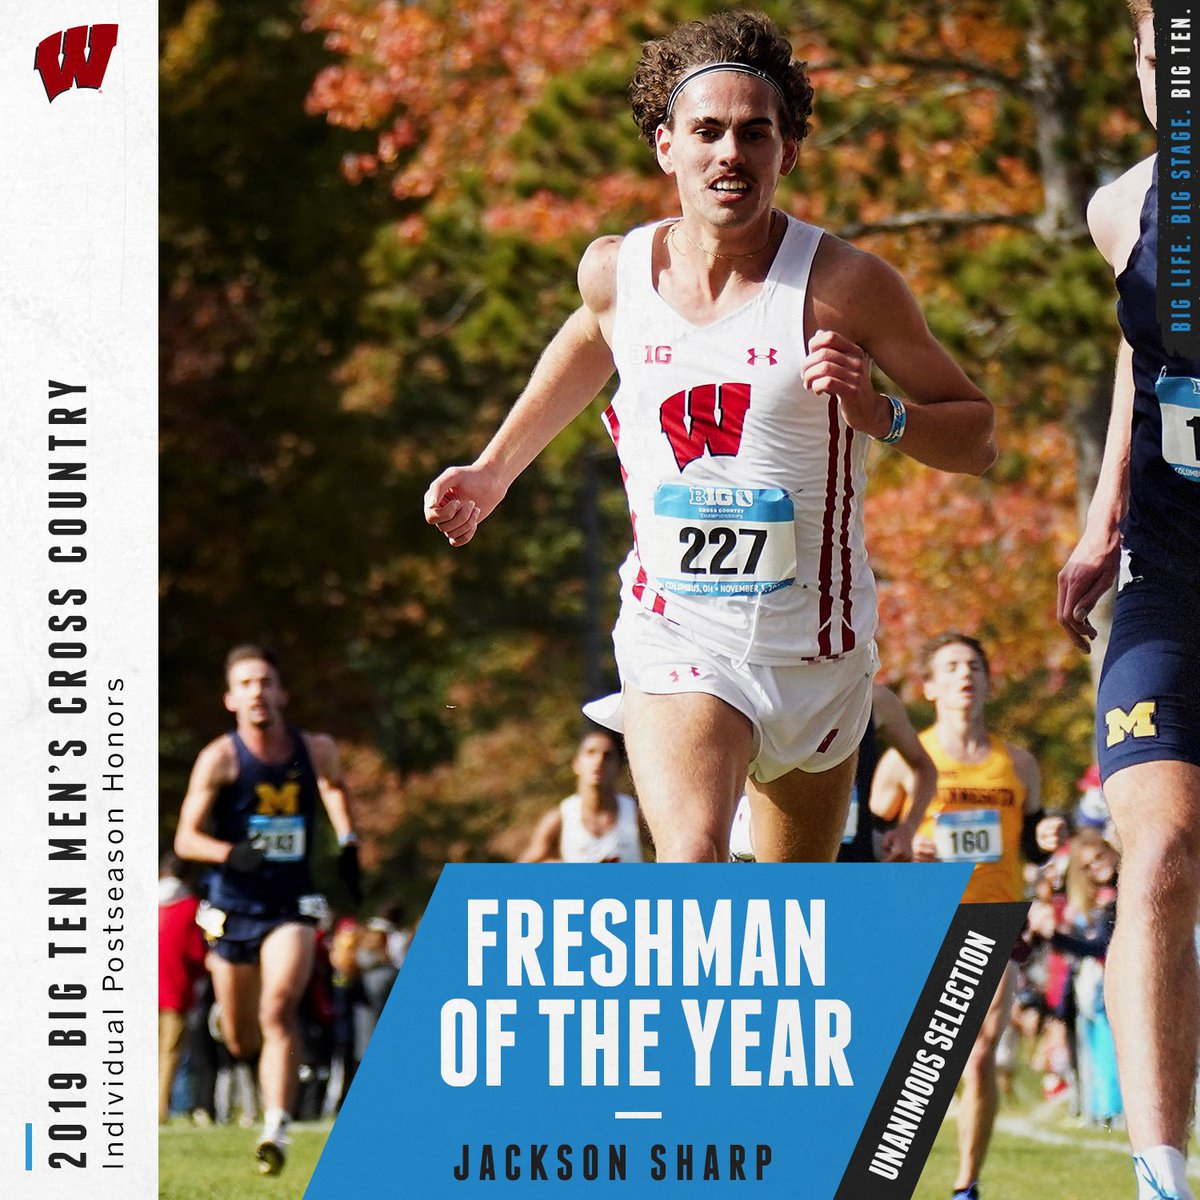 Jackson Sharp of @BadgerTrackXC named 2019 Big Ten Men's Cross Country Freshman of the Year. #B1GXC https://t.co/dJT13HyYnY